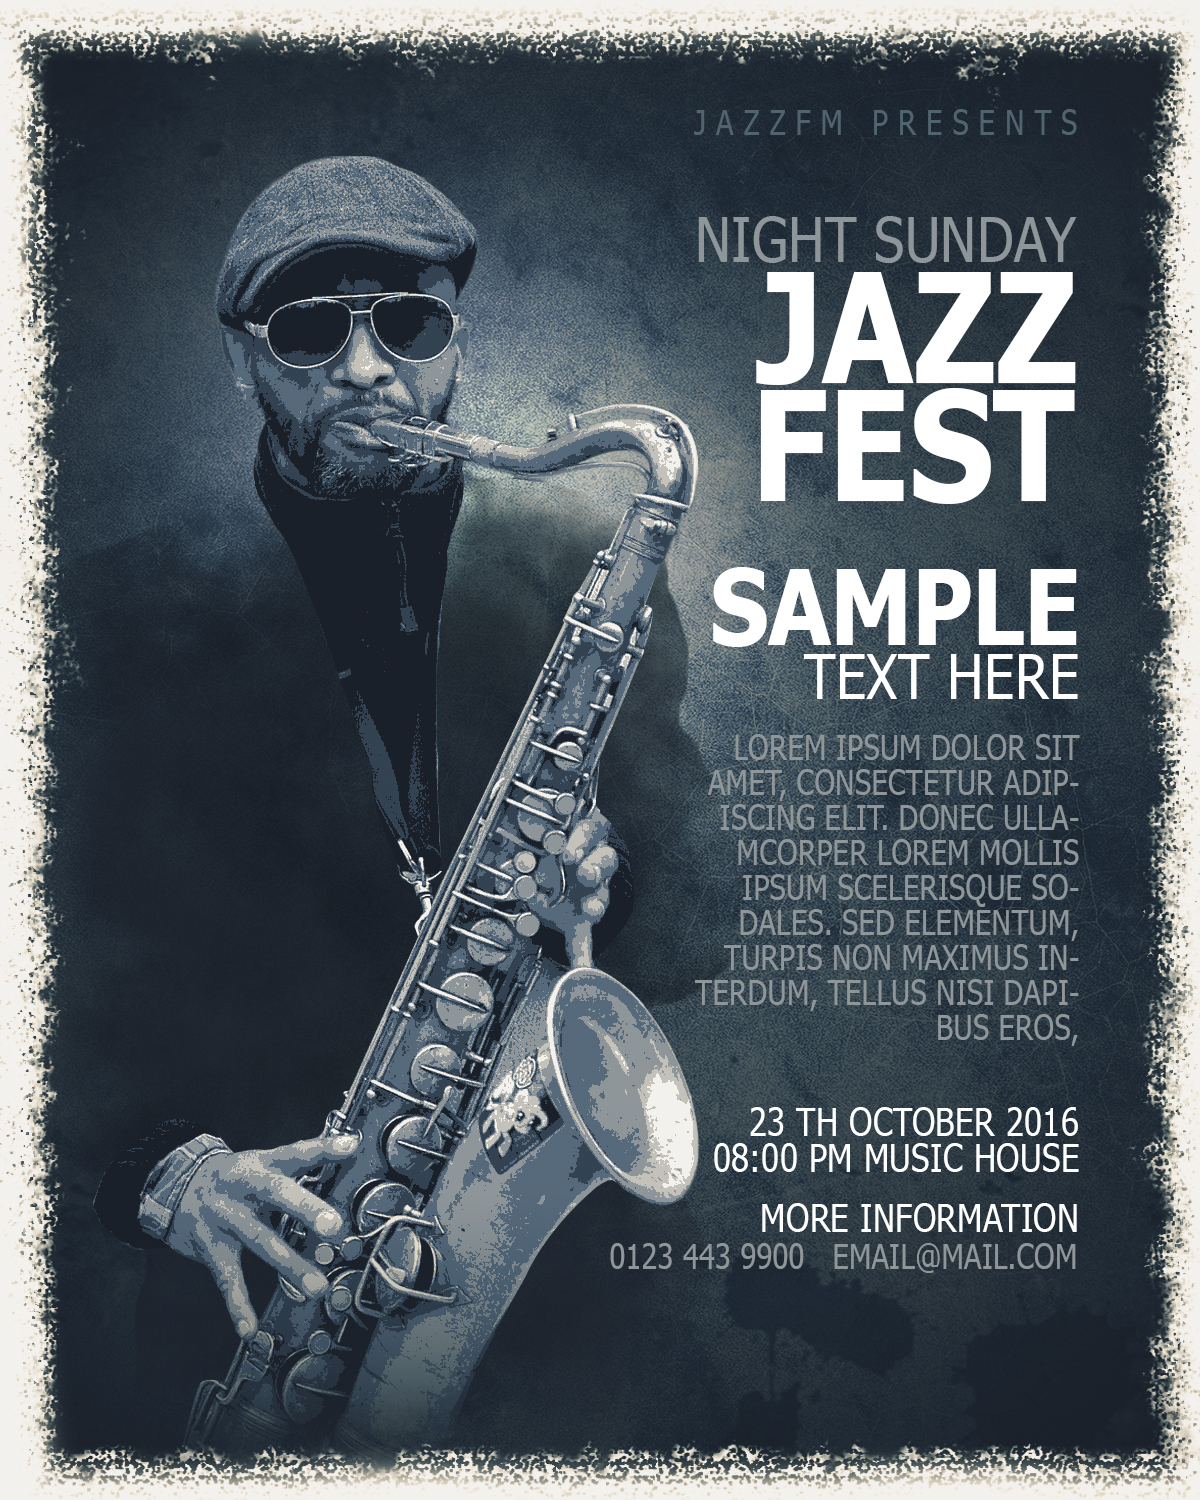 Jazz Fest Poster Design In Photoshop